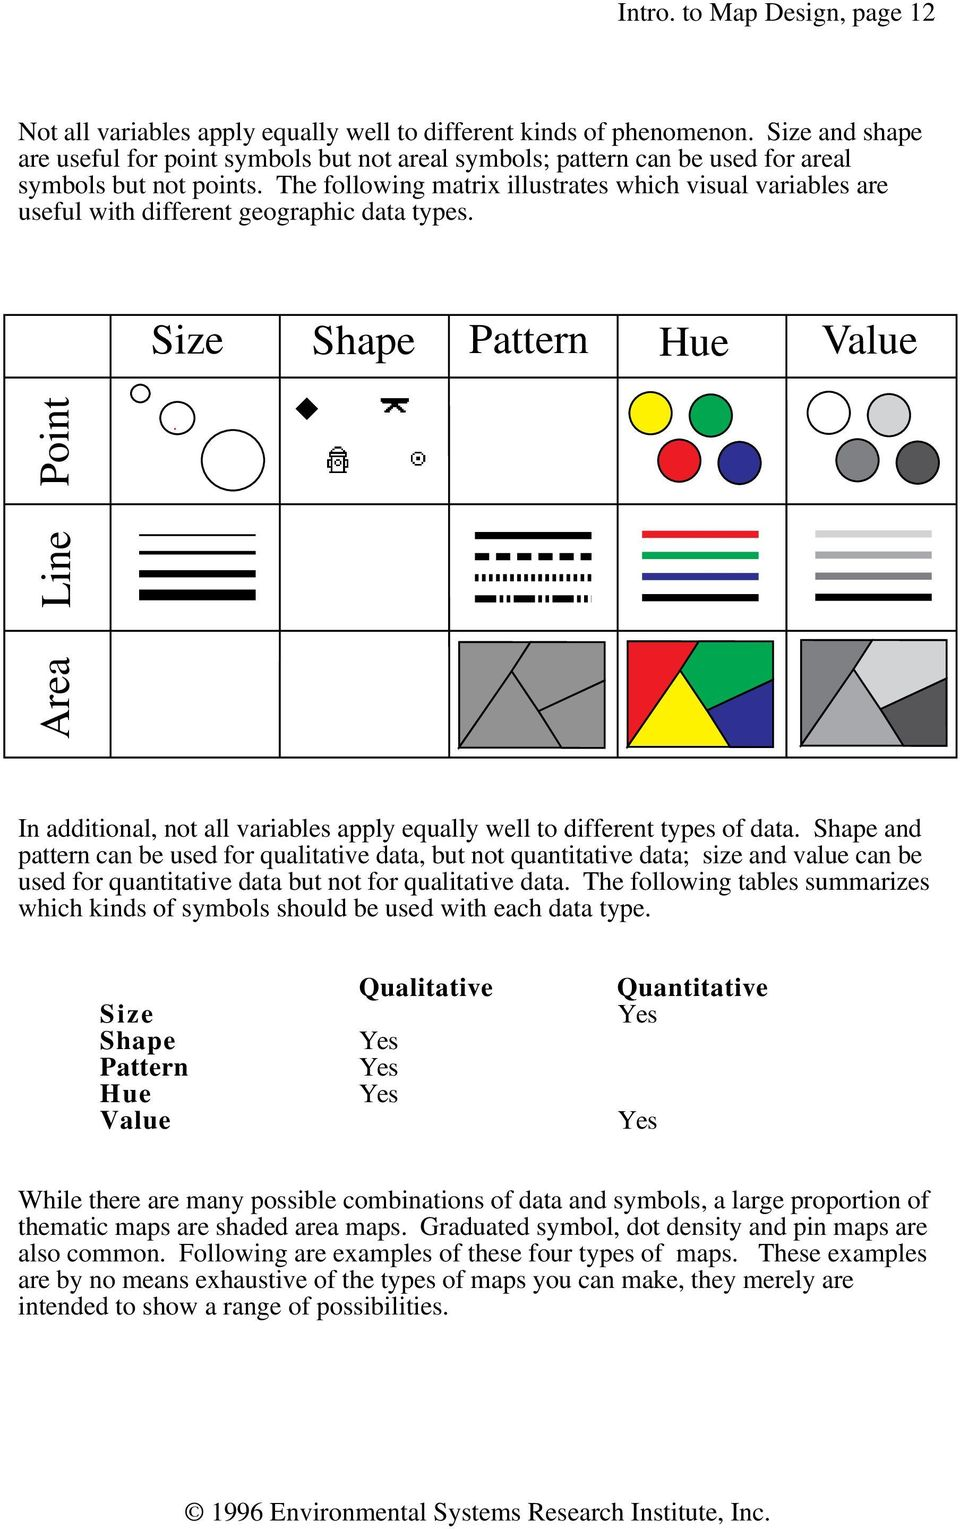 The following matrix illustrates which visual variables are useful with different geographic data types.